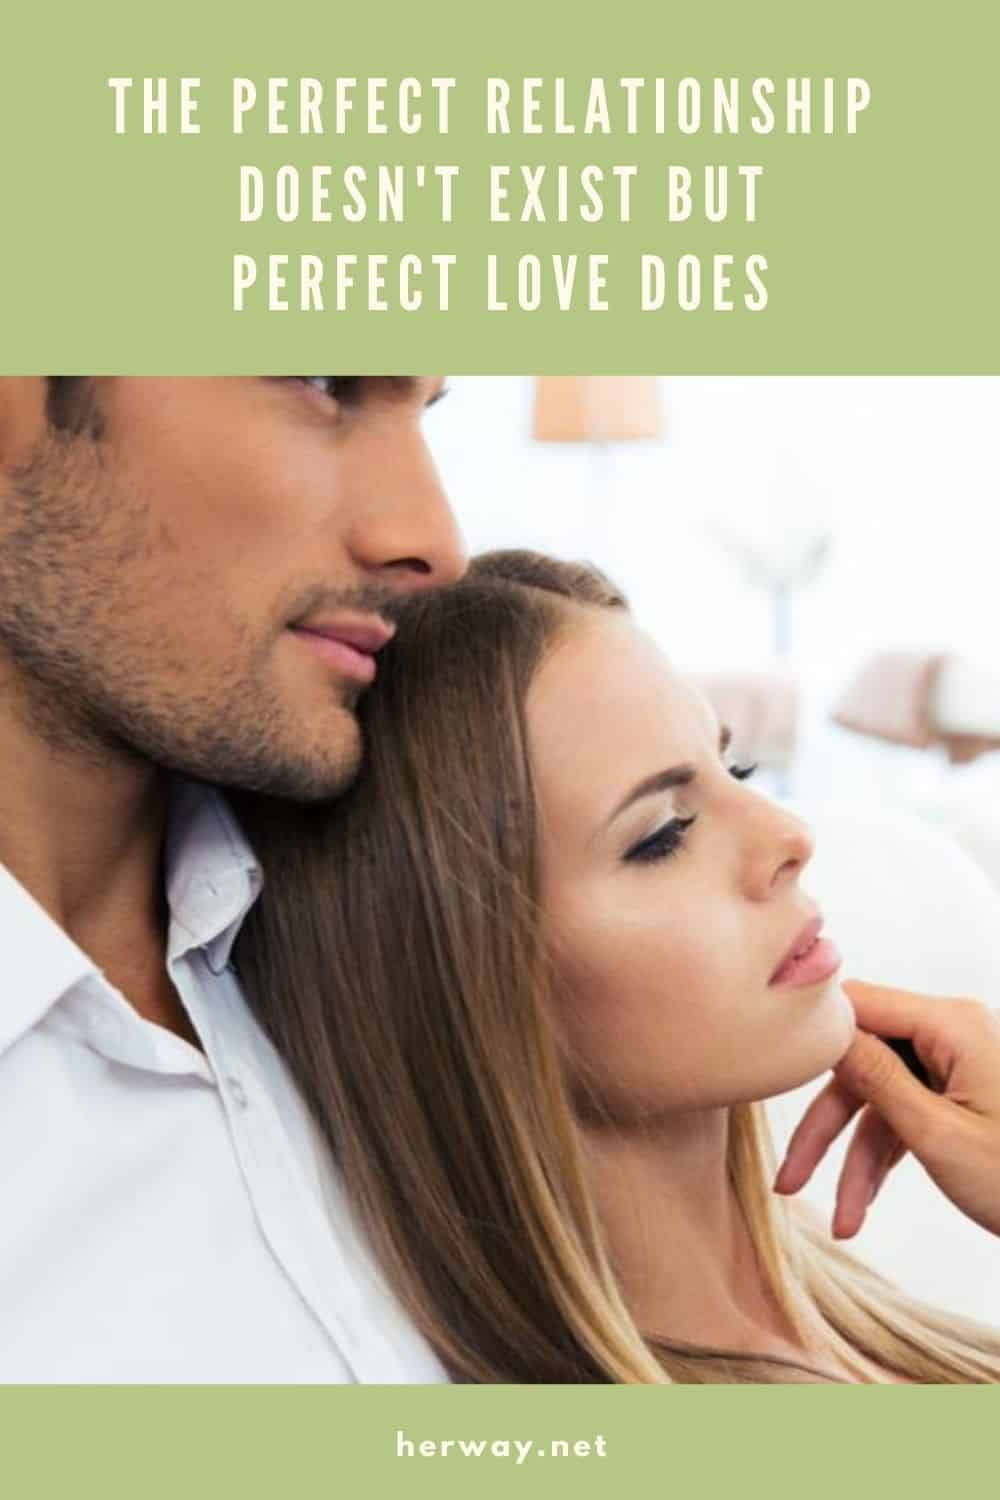 The Perfect Relationship Doesn't Exist But Perfect Love Does